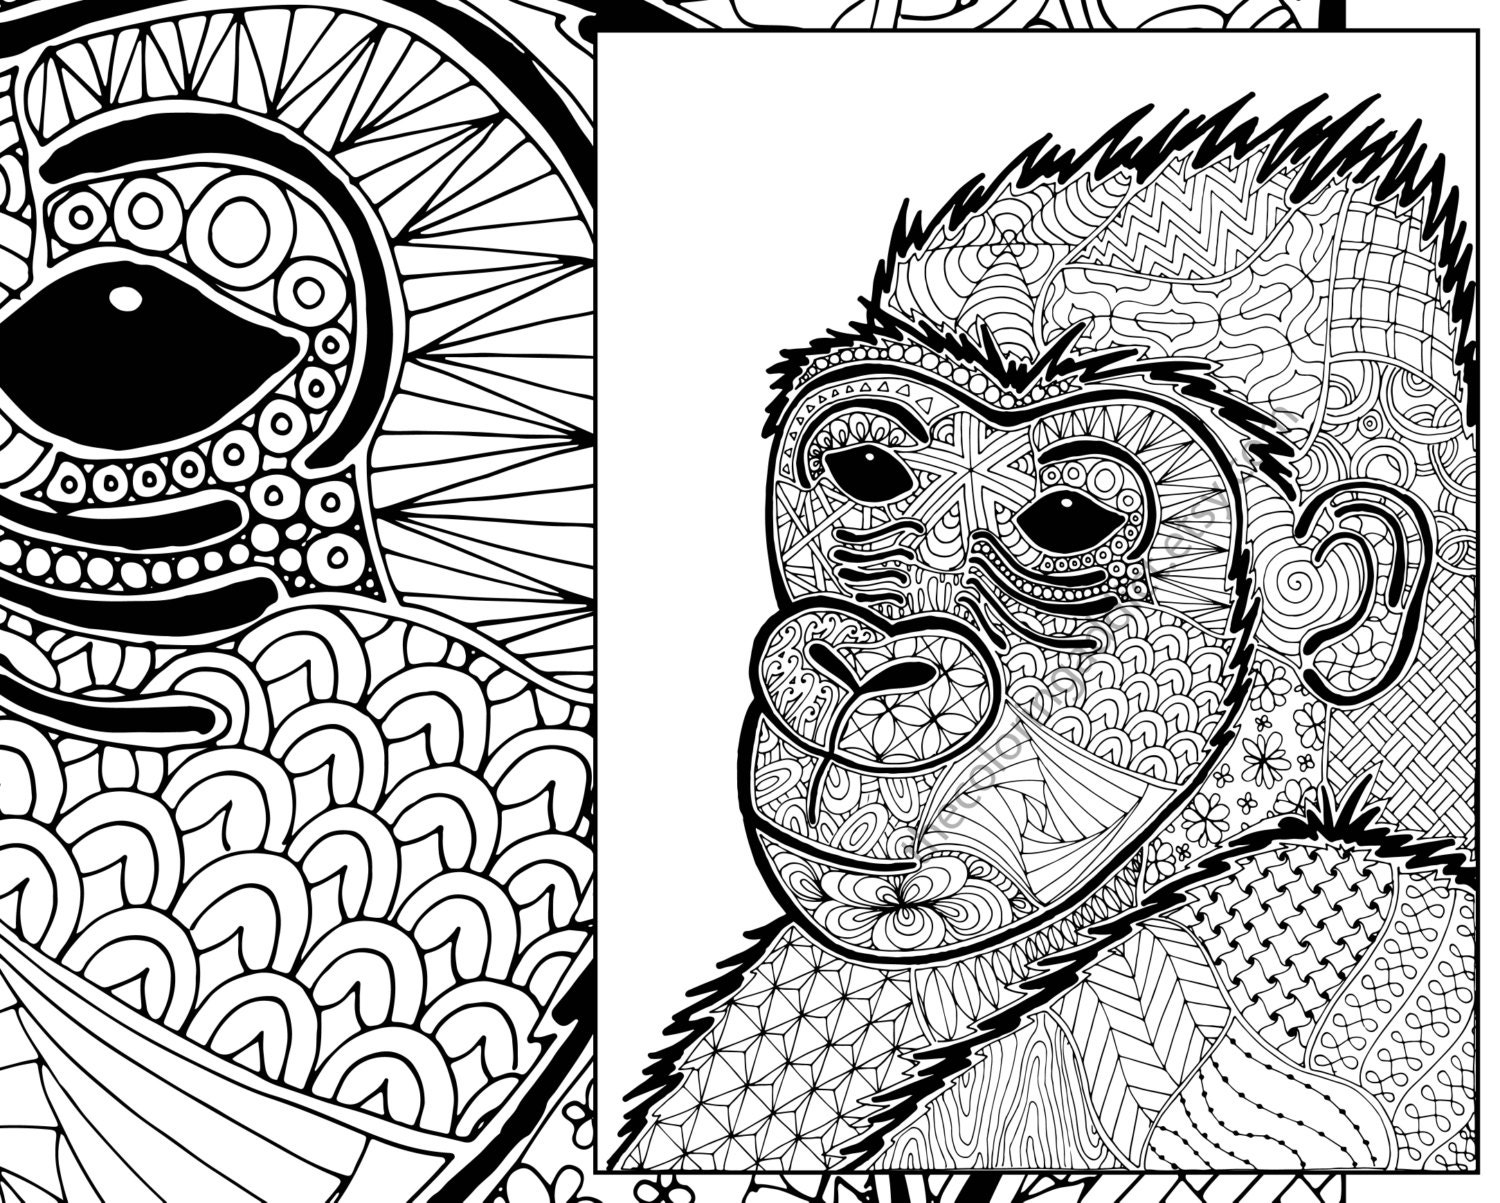 Animal kingdom coloring book gorilla -  Zoom